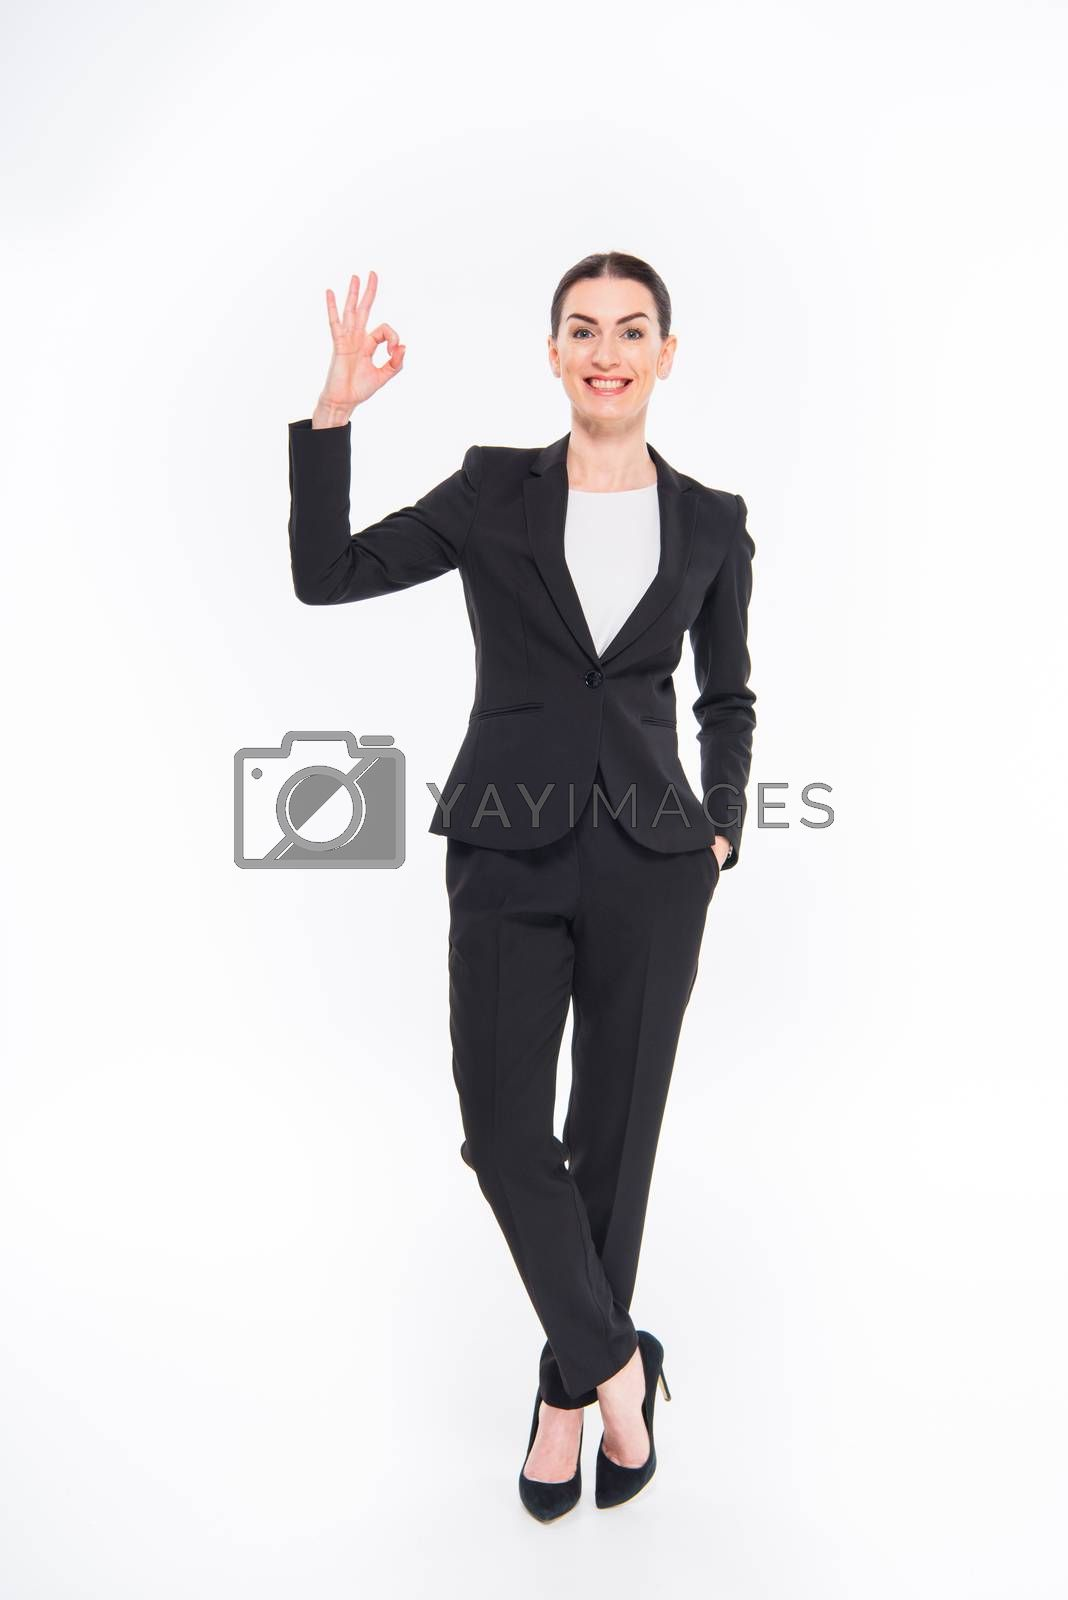 Royalty free image of Businesswoman showing OK sign  by LightFieldStudios